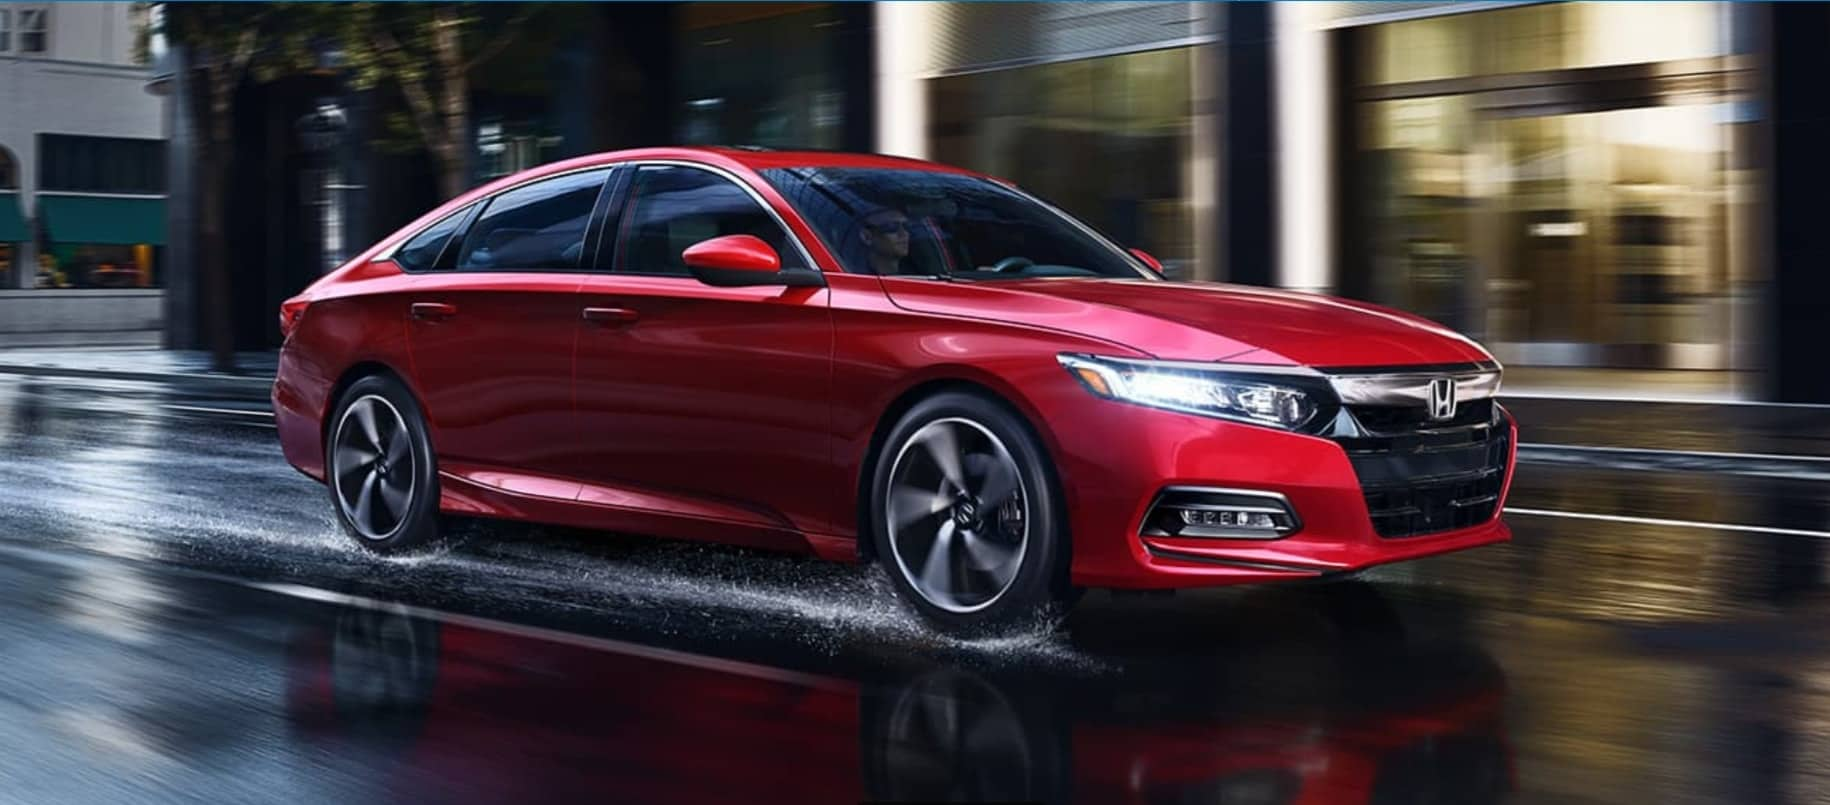 Explore the 2020 Honda Accord near Quincy IL